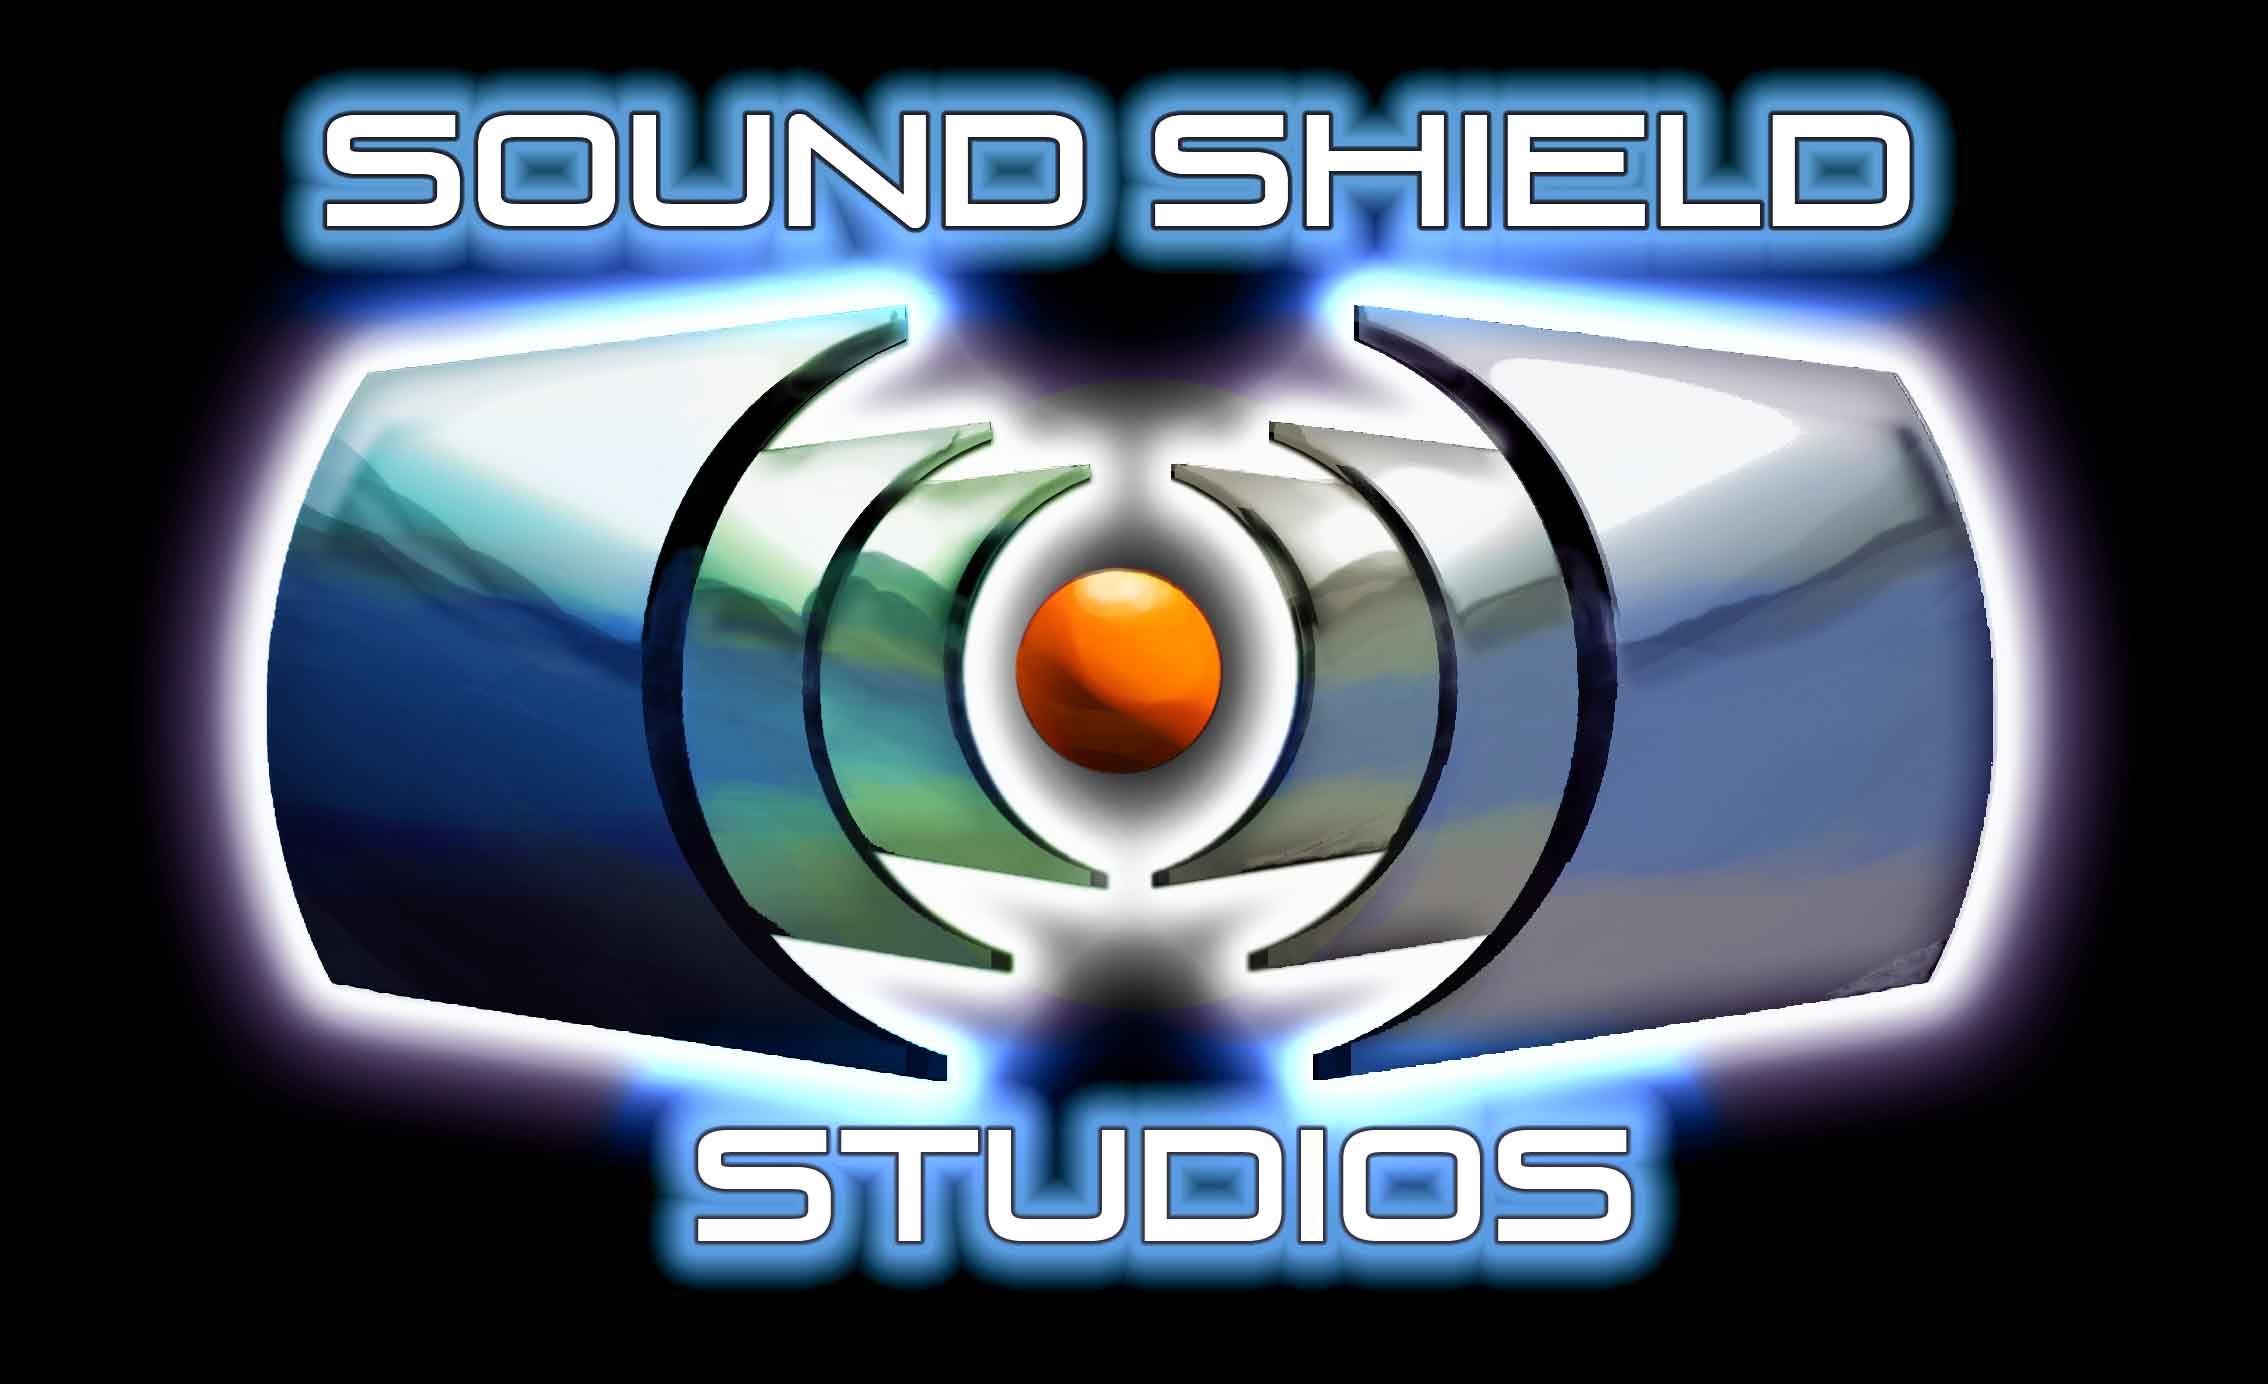 09 Sound Shield Flare